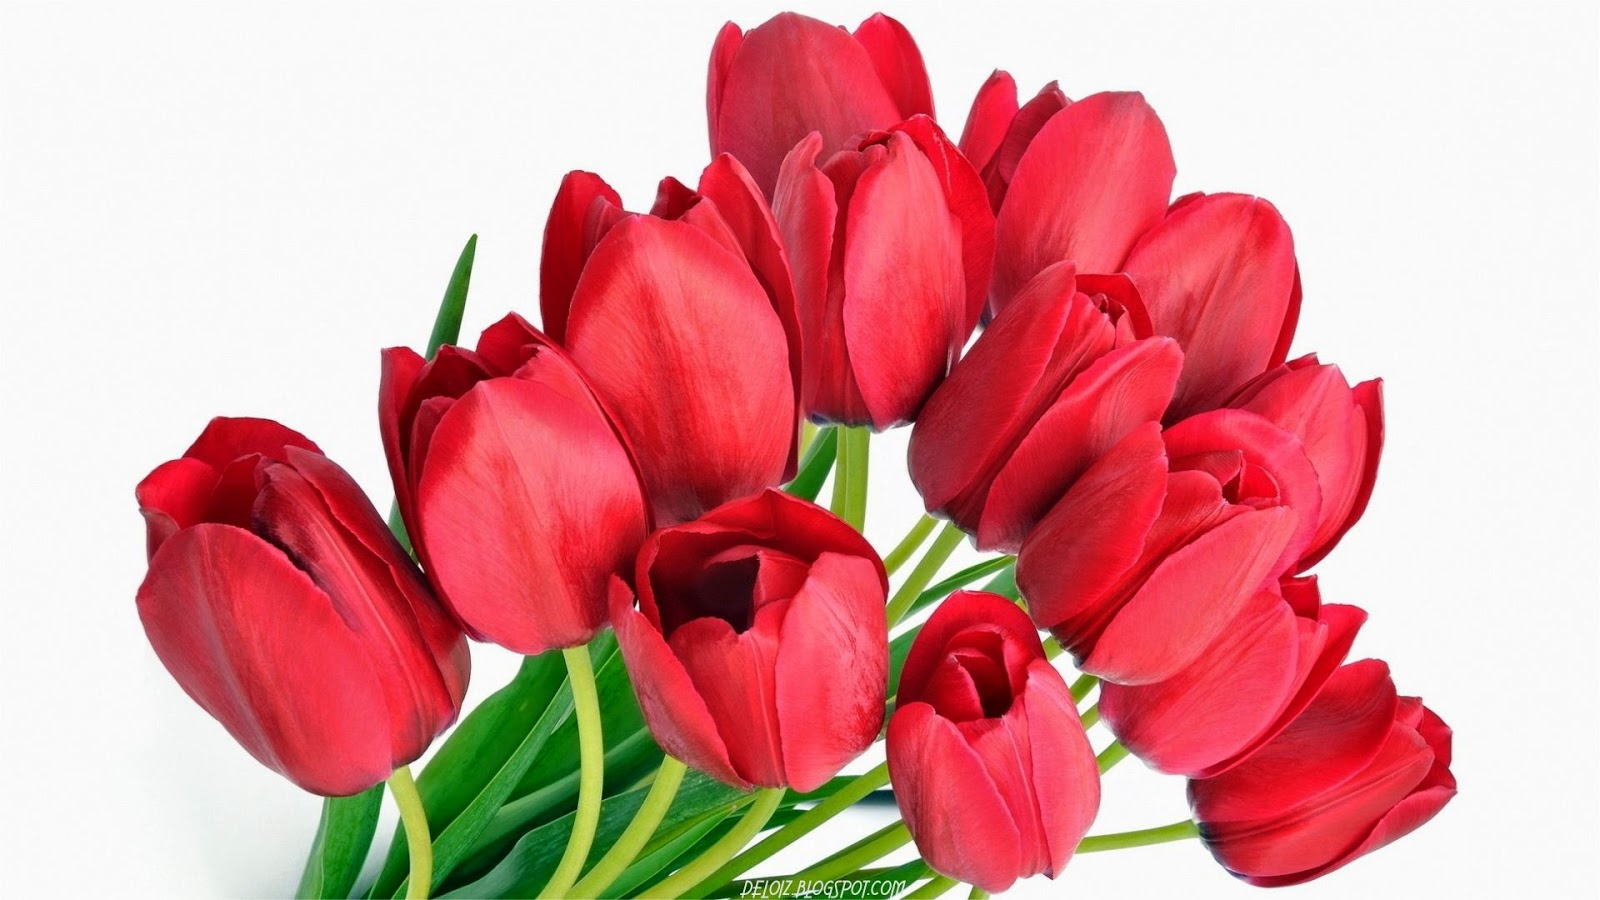 WALLPAPER ANDROID IPHONE Wallpaper Bunga Tulip Merah